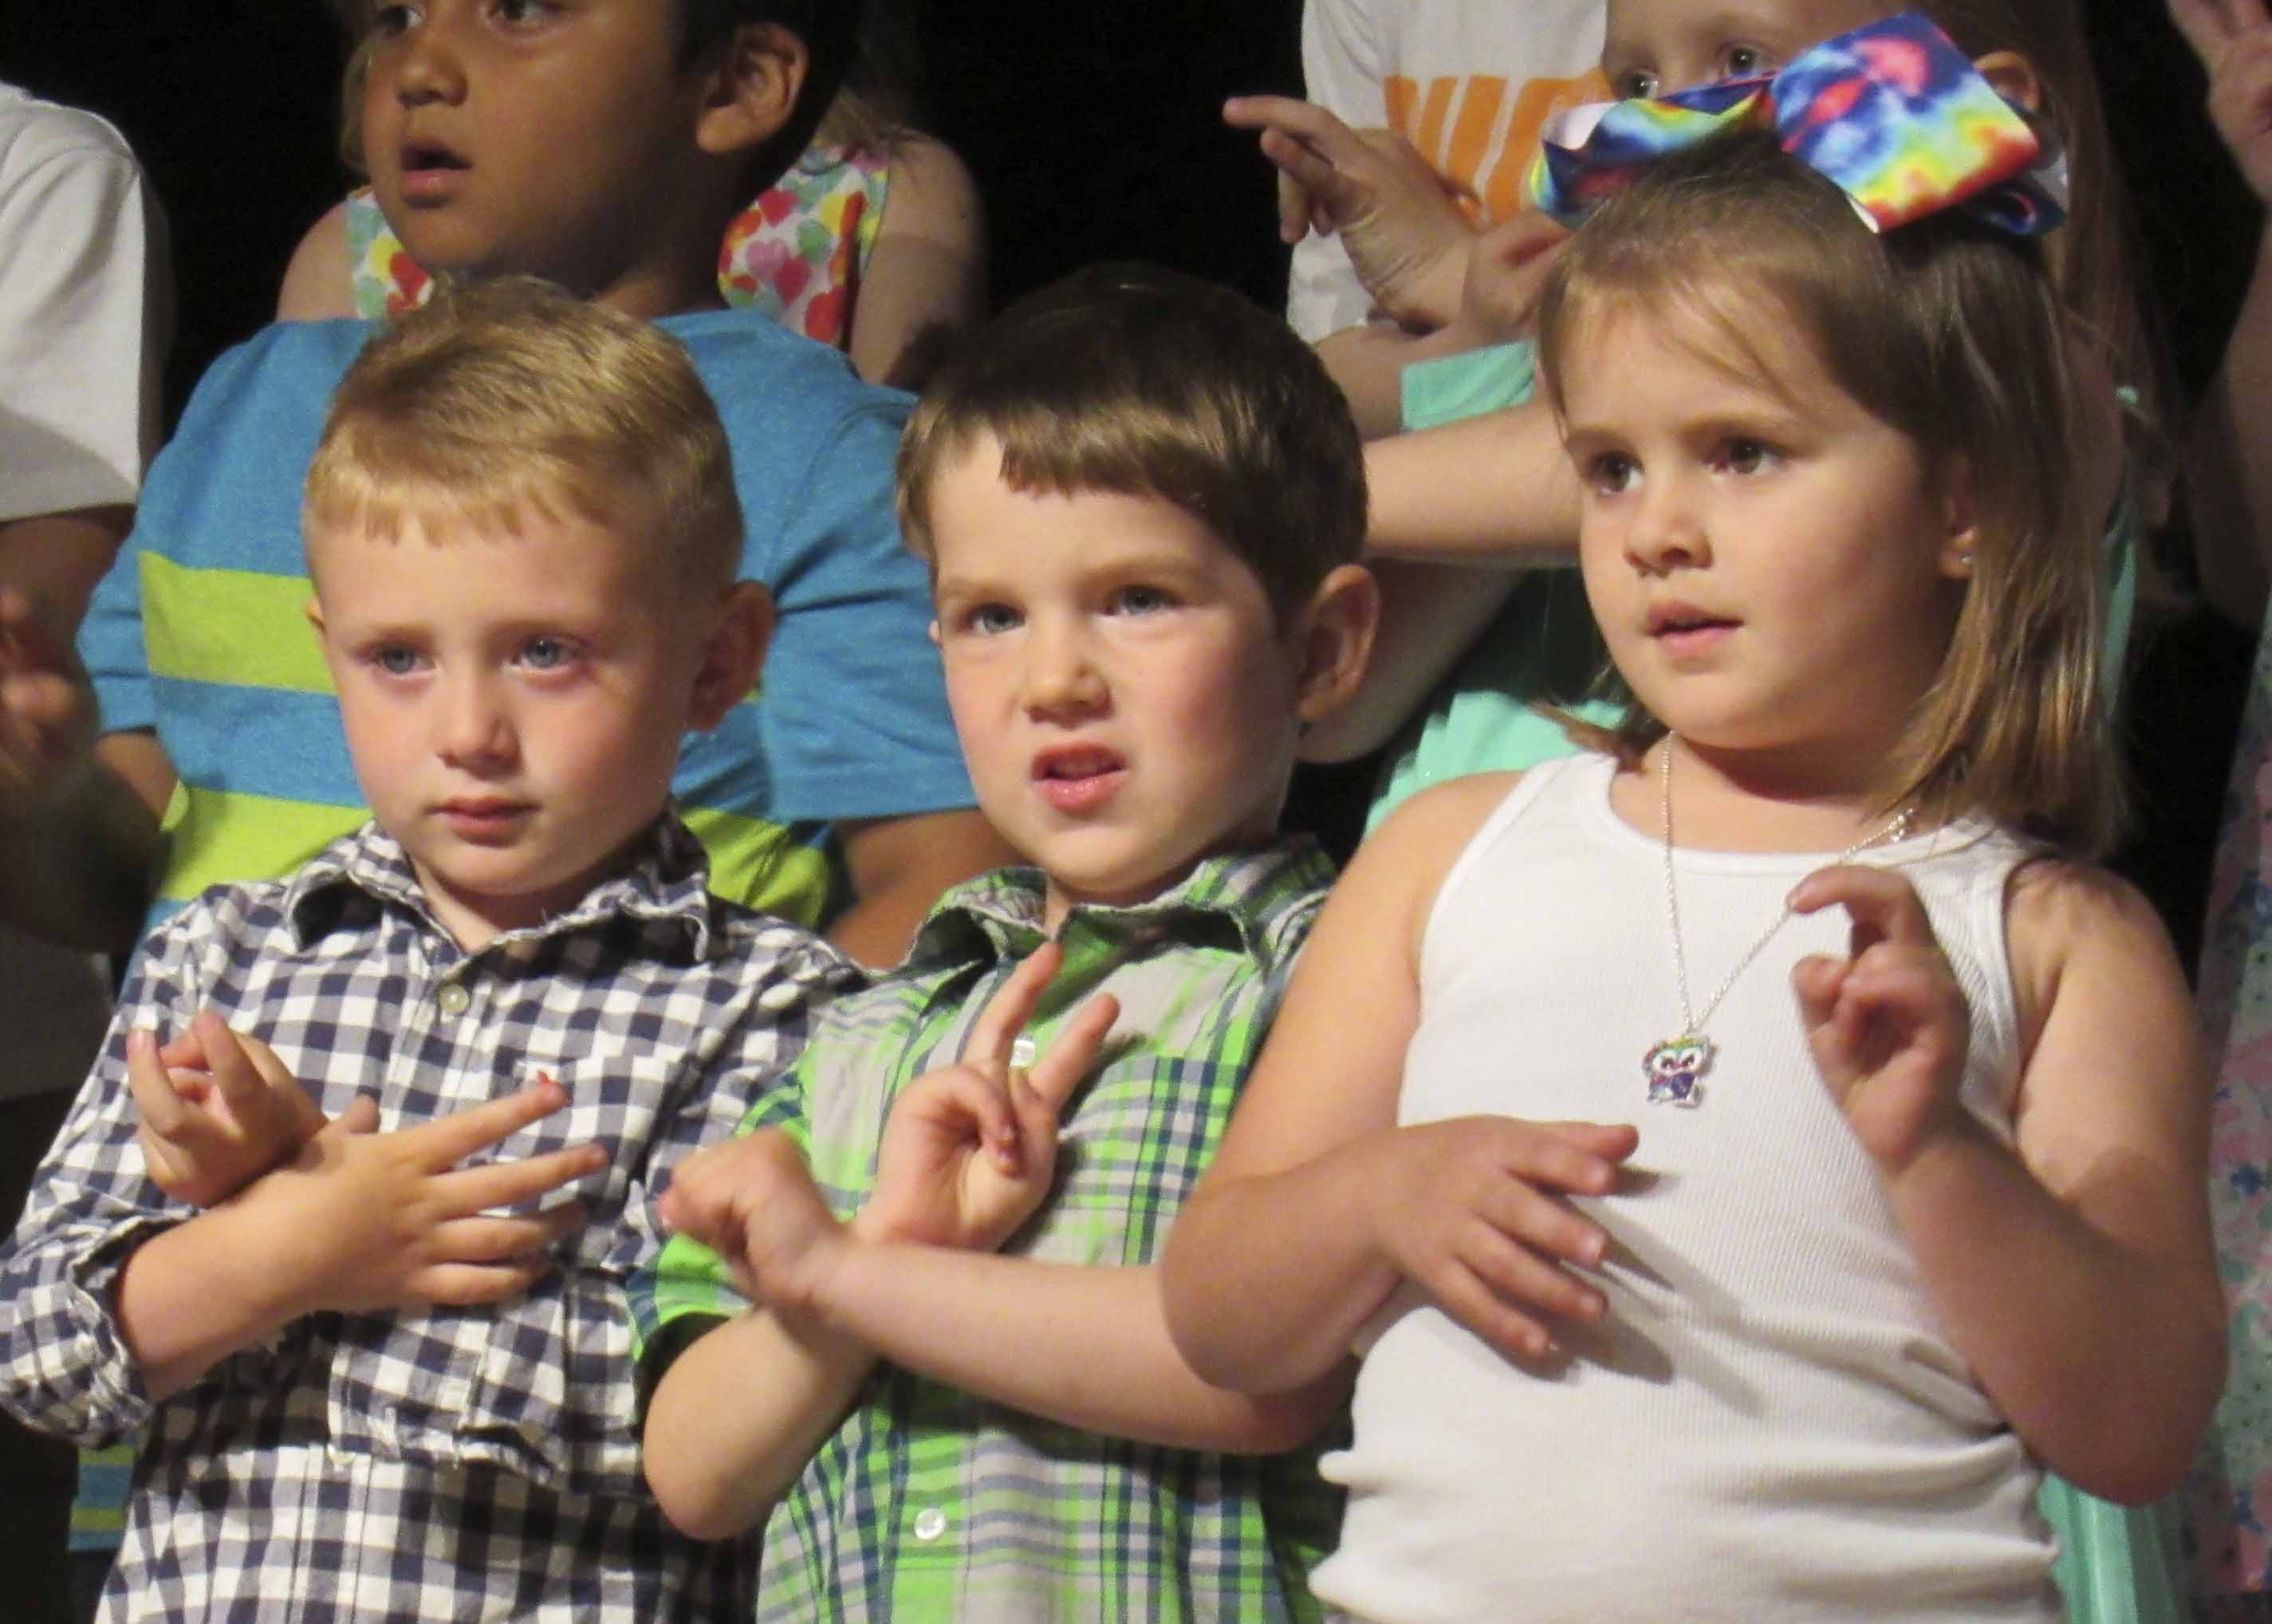 Preschoolers Blake Shover, Tripp Culver and Eden Stoneking perform a song during their preschool graduation ceremony at MHS. (Photos by Kim Brooks)